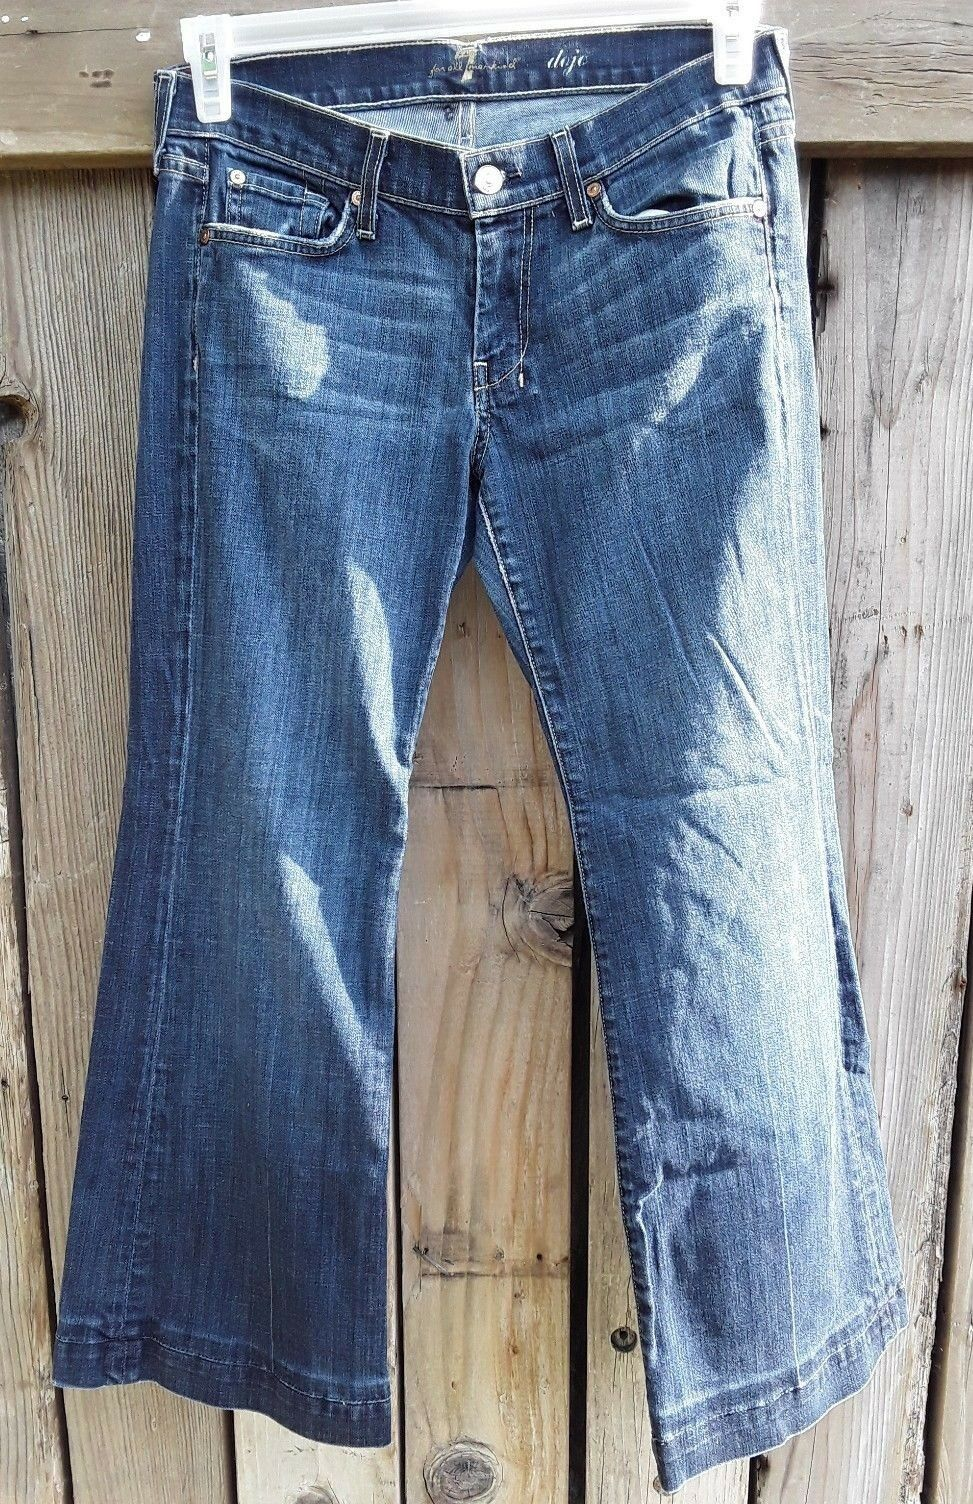 7 For All Mankind Dojo Women's bluee Jeans Size 29 Dark Wash Flare Legs